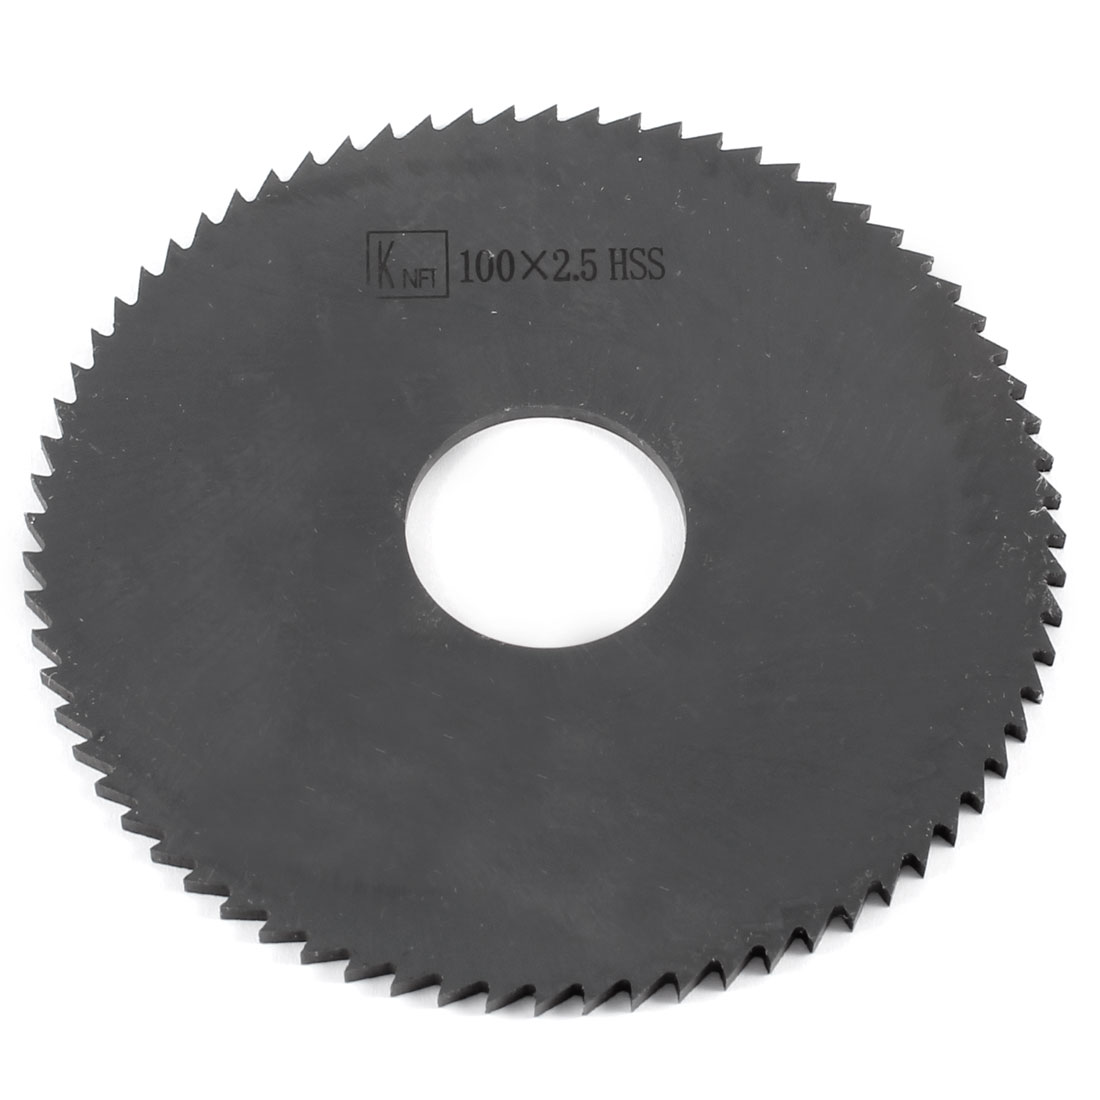 100mm x 2.5mm x 27mm Milling Cutter HSS 72T Slitting Saw Black